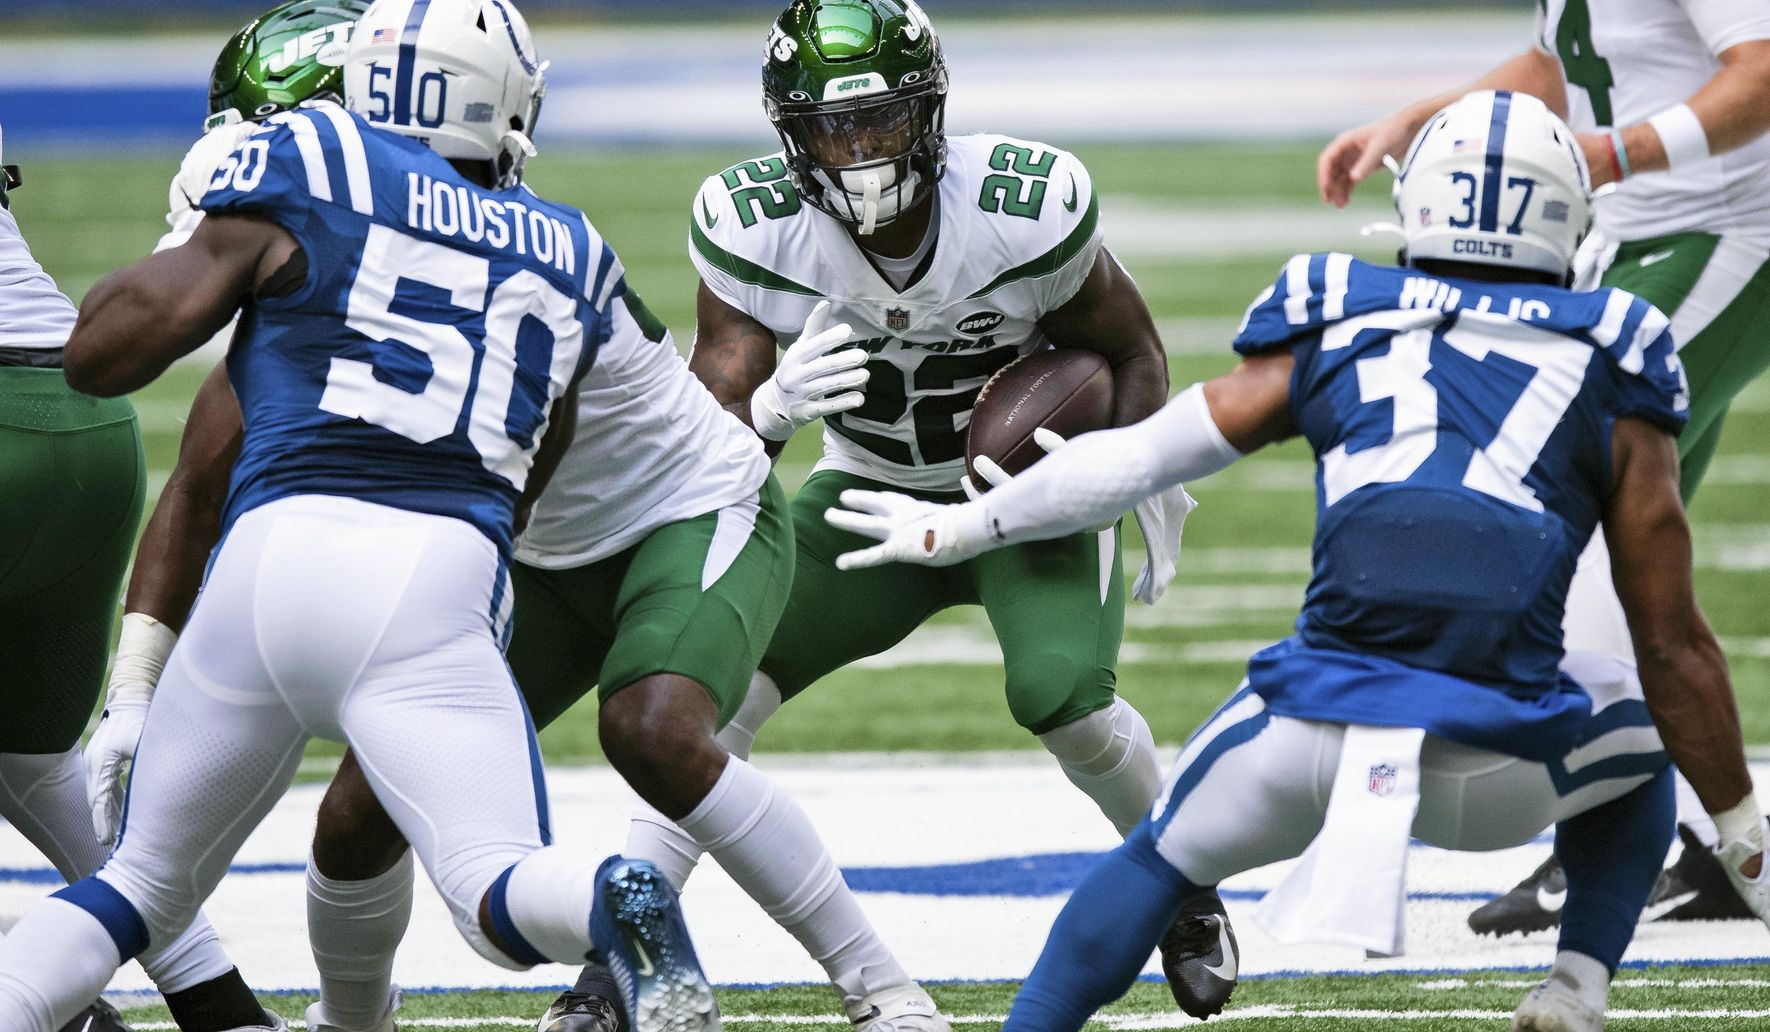 Jets-perines_chance_football_78226_c0-154-3691-2306_s1770x1032